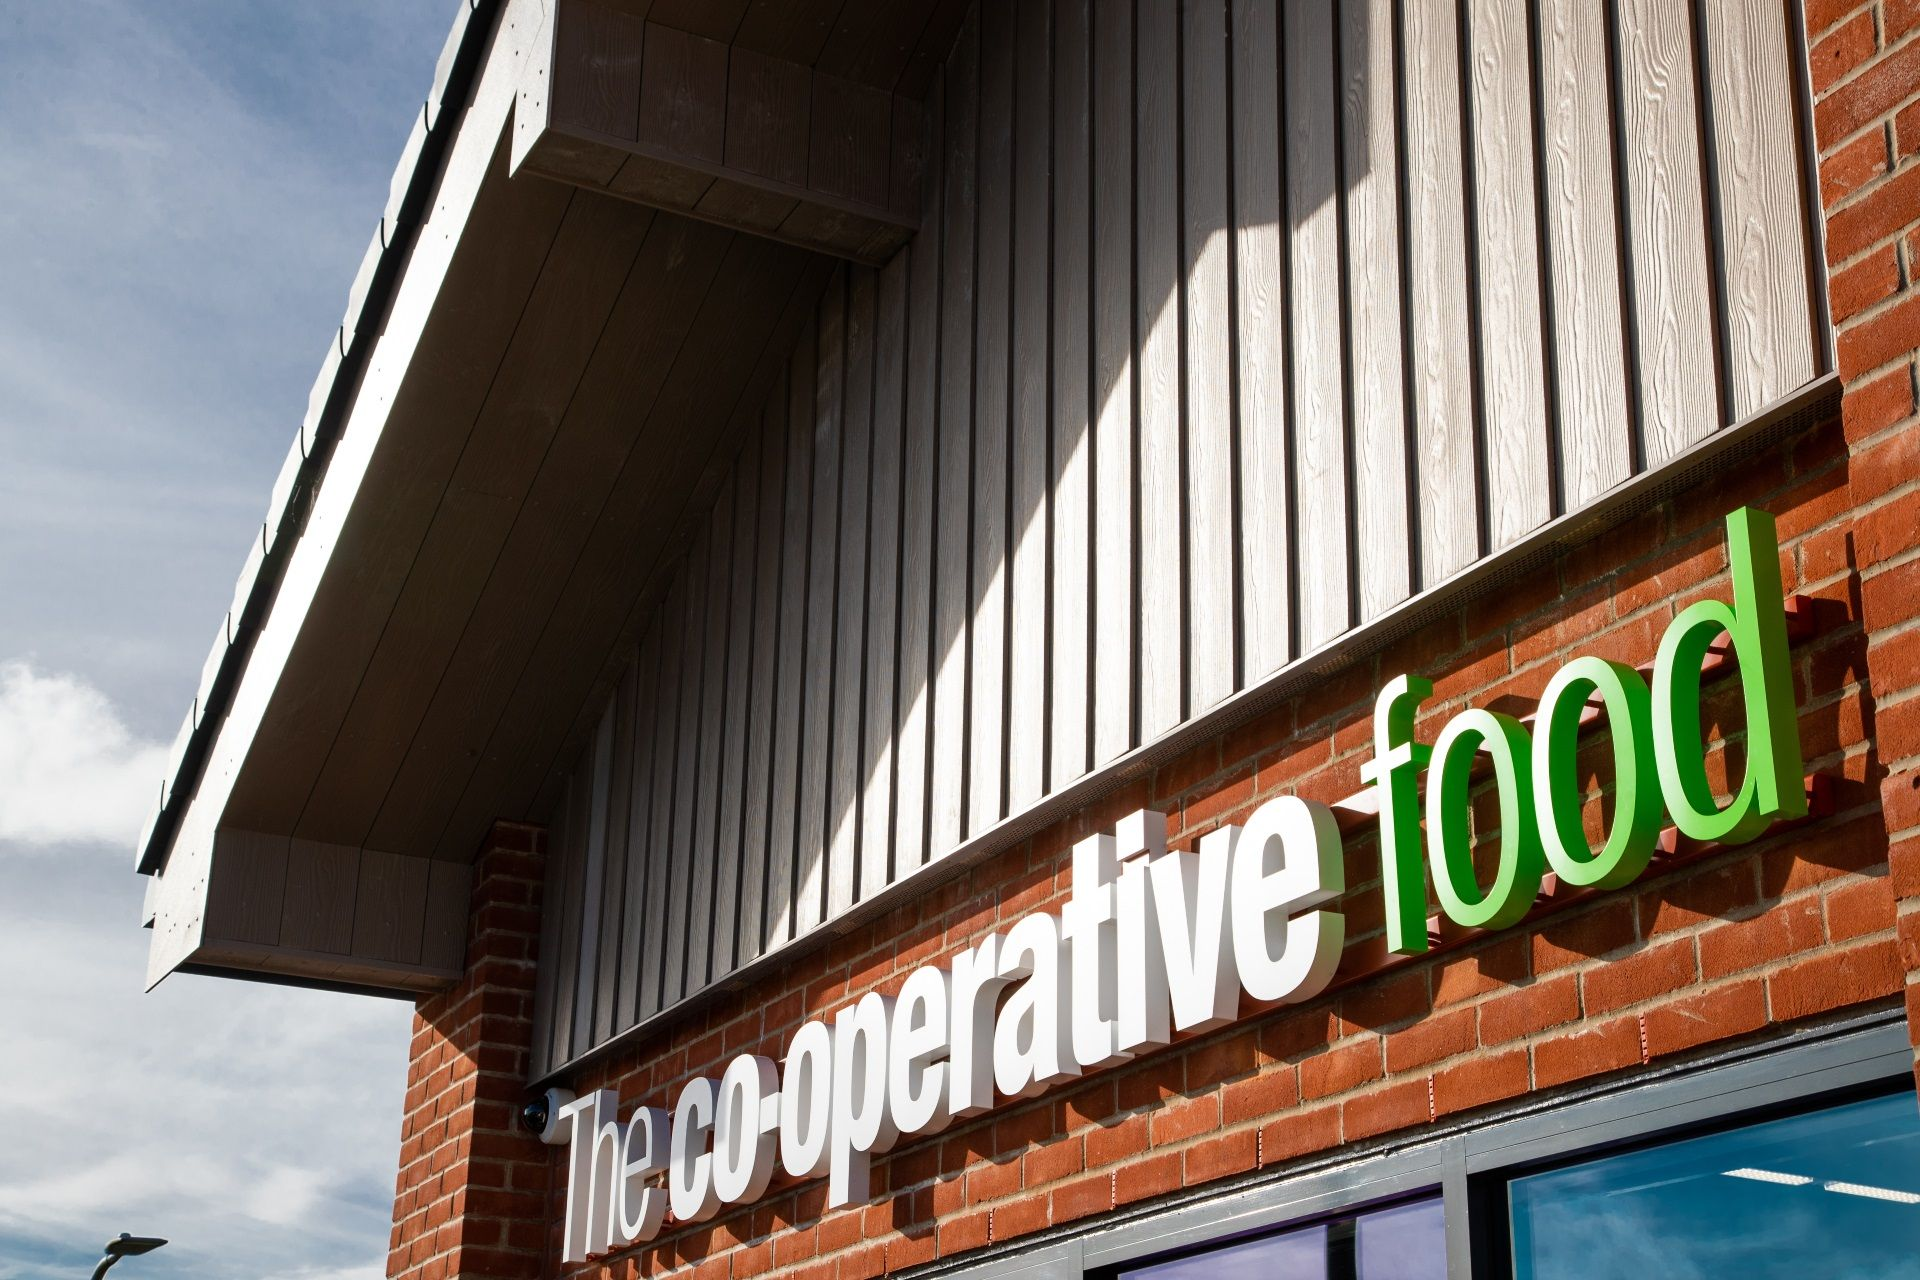 Central England Co-op set to open new community food store in Eastwood later this year